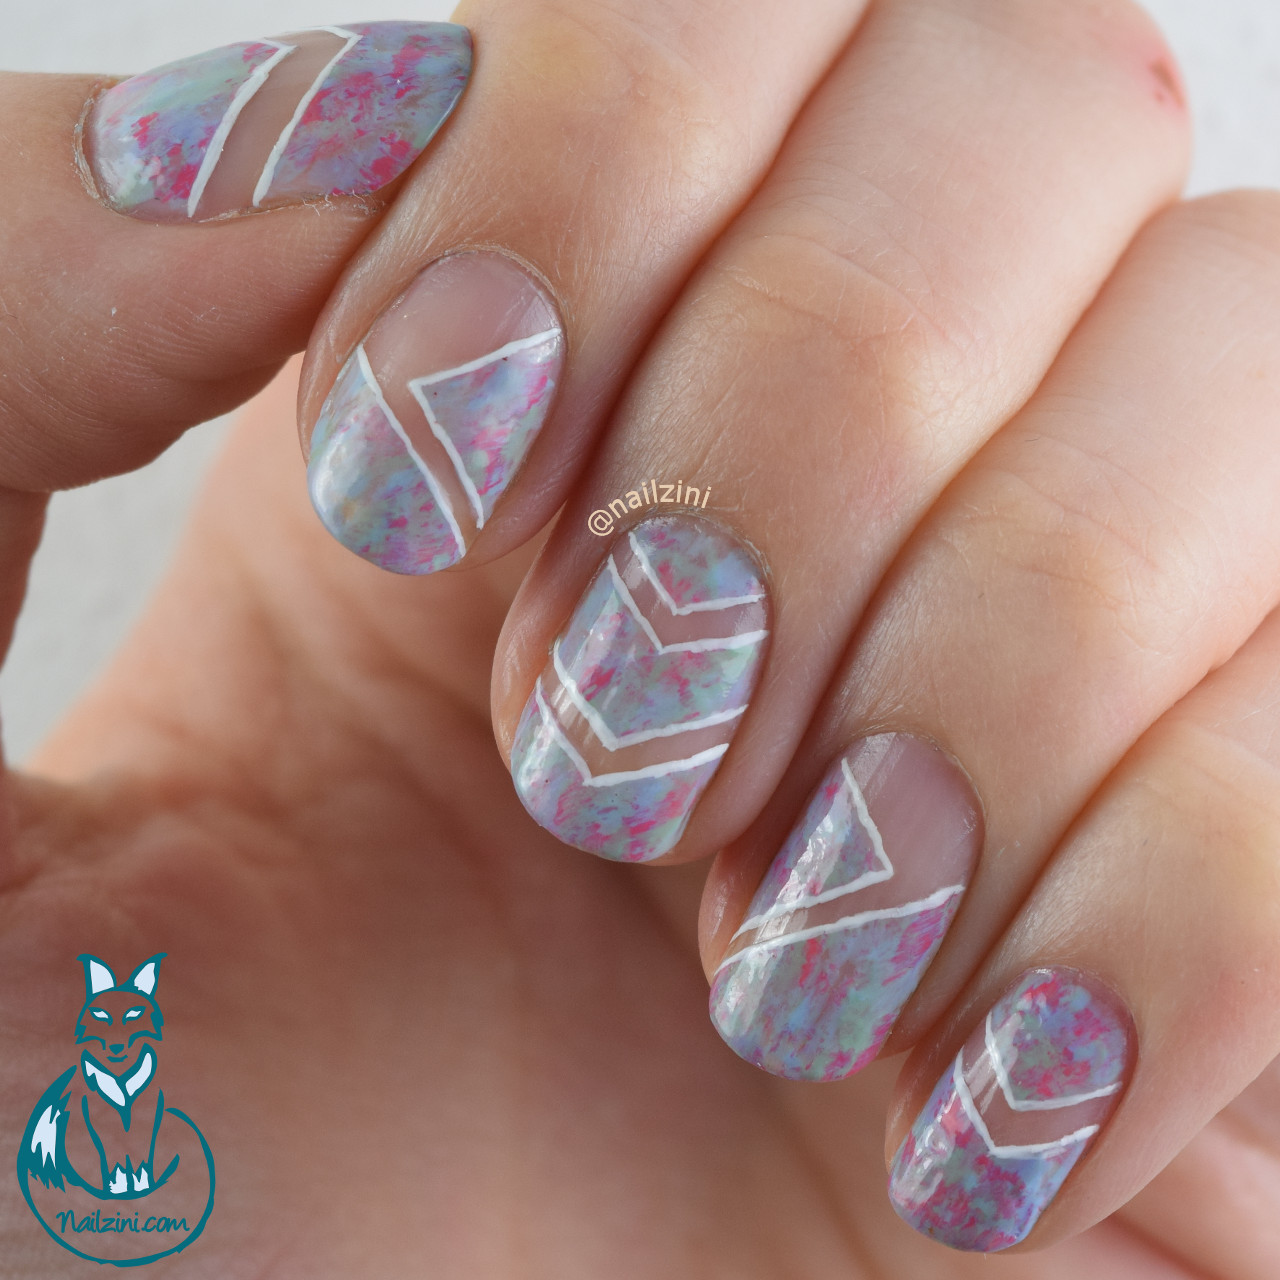 Negative Space Nail Art | Nailzini: A Nail Art Blog